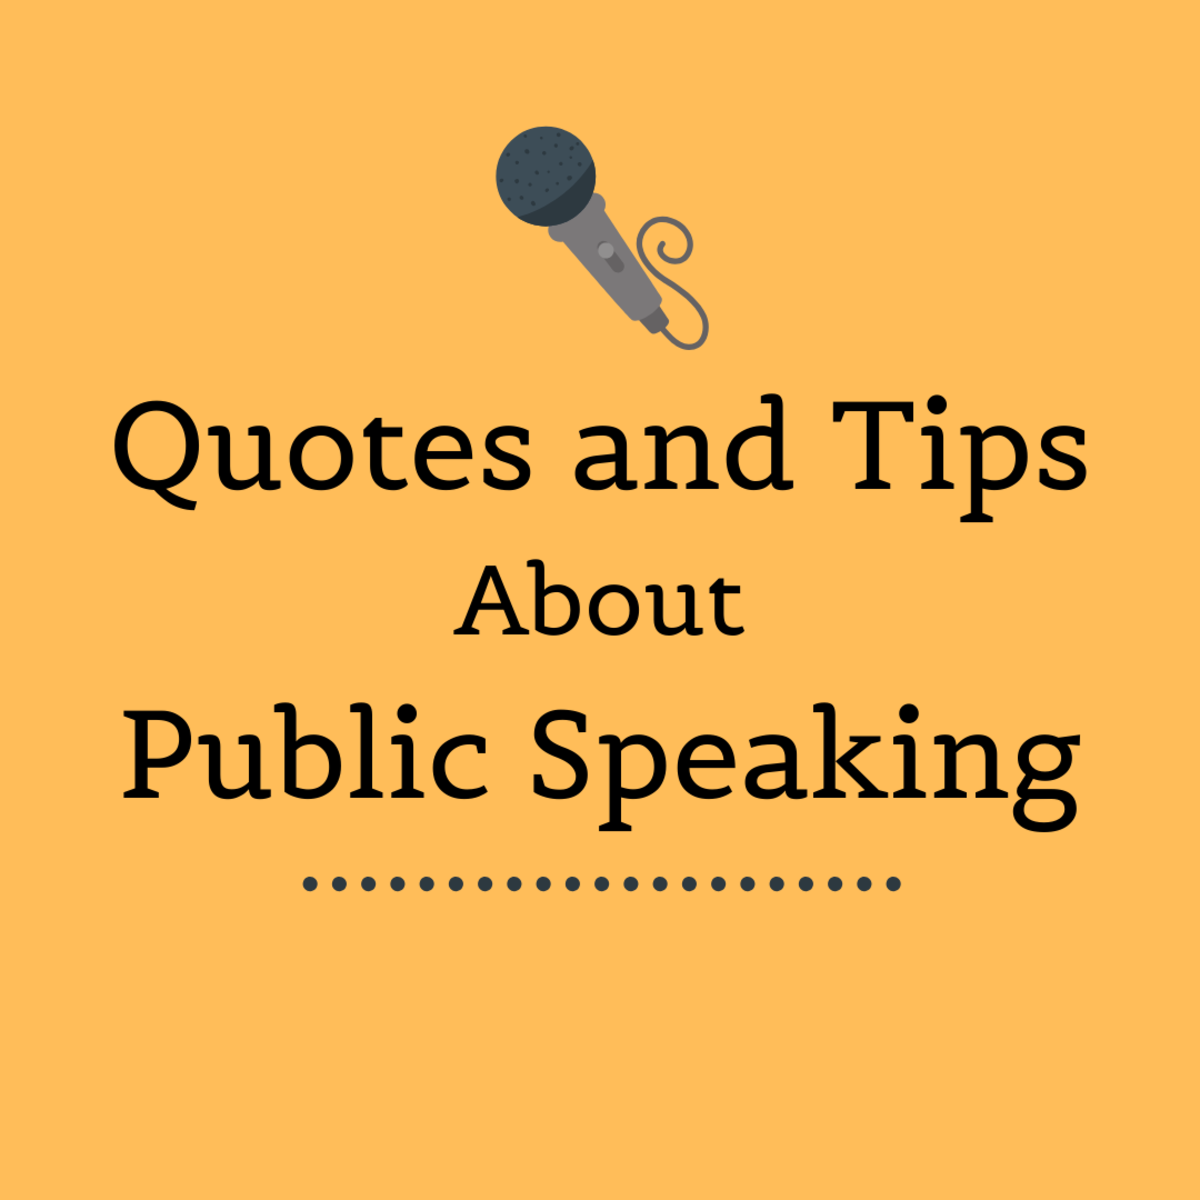 Inspiring Quotes for People Terrified of Public Speaking